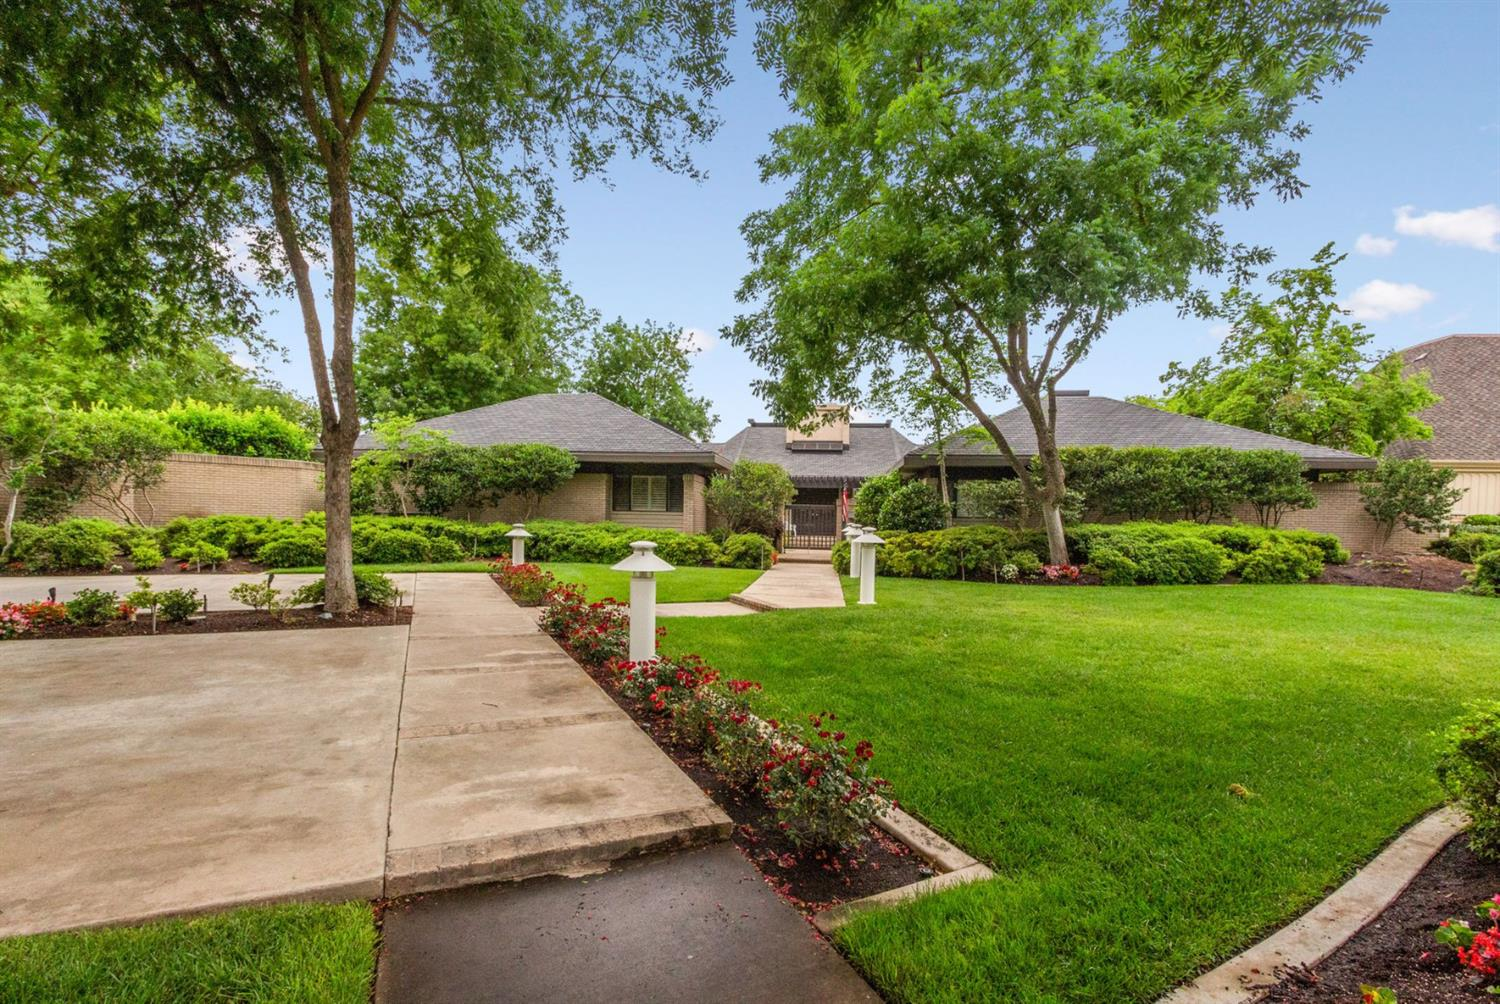 Spectacular estate property on the bluffs at San Joaquin golf course. Architecturally designed & built w/marvelous view of the golf course, the San Joaquin river, & nearby estuary. Home features newer A/C, 5 year old custom slate comp roof, fresh neutral paint, custom windows, gourmet kit w/custom induction stove top, beautiful cabinets & designer granite. Views from kitchen & dinette area are breathtaking. Huge main BR w/simply gorgeous views. Main bathroom has  jetted tub & walk in shower, & a sitting area to put on make up. 2 very large walk in closets. Garage has a cooking facility. Subzero refrigerator & plenty of cabinets for china. Custom built in desk in the kitchen. The estate has it's own solar farm, owner says it costs approx $1200 per year on their PG&E. Outside the FR is a new Pebble tec pool that features special lighting. Arbor around the back of the pool for shade & relaxing. Custom award winning landscaping w/oversize lot extending to golf course. Permitted for horses.